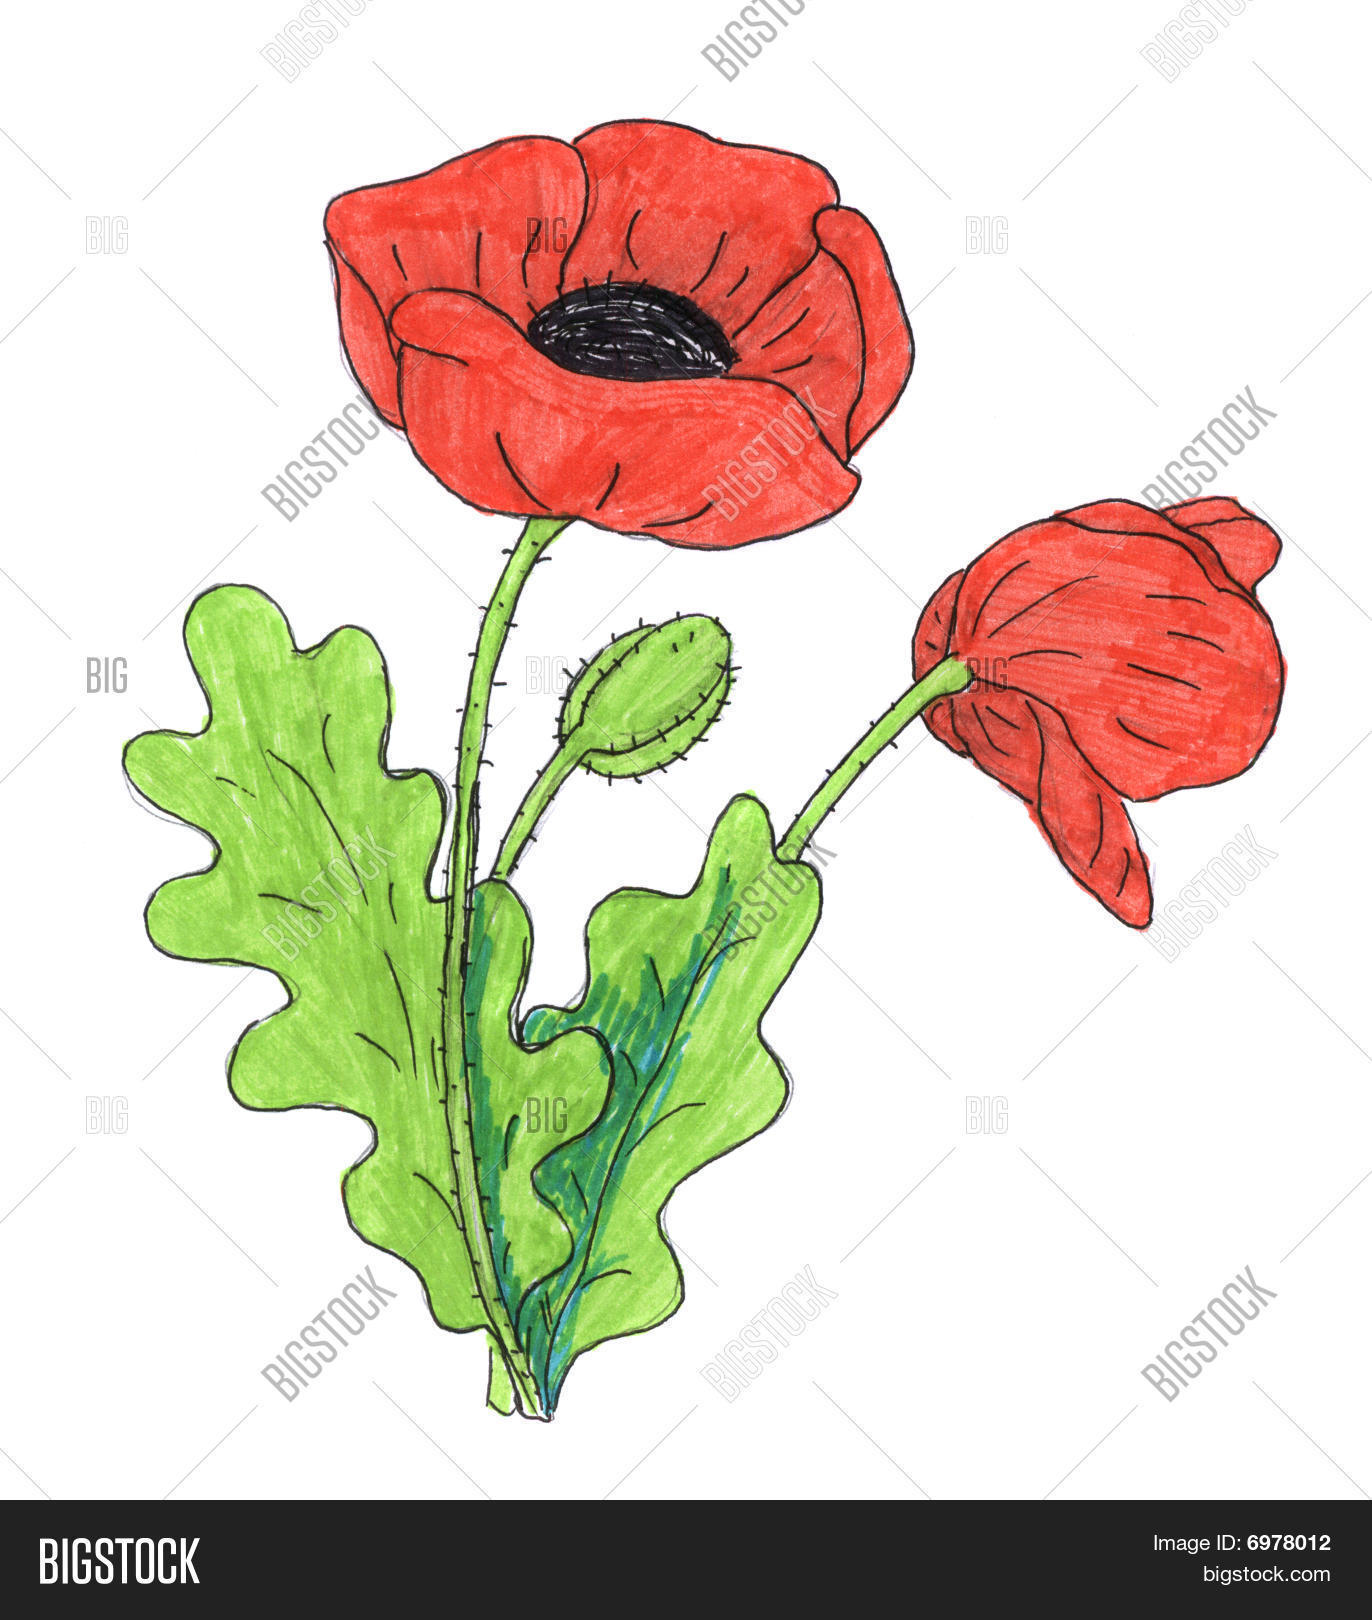 Big flowers drawing at getdrawings free for personal use big 1372x1620 poppy flower drawing image amp photo bigstock mightylinksfo